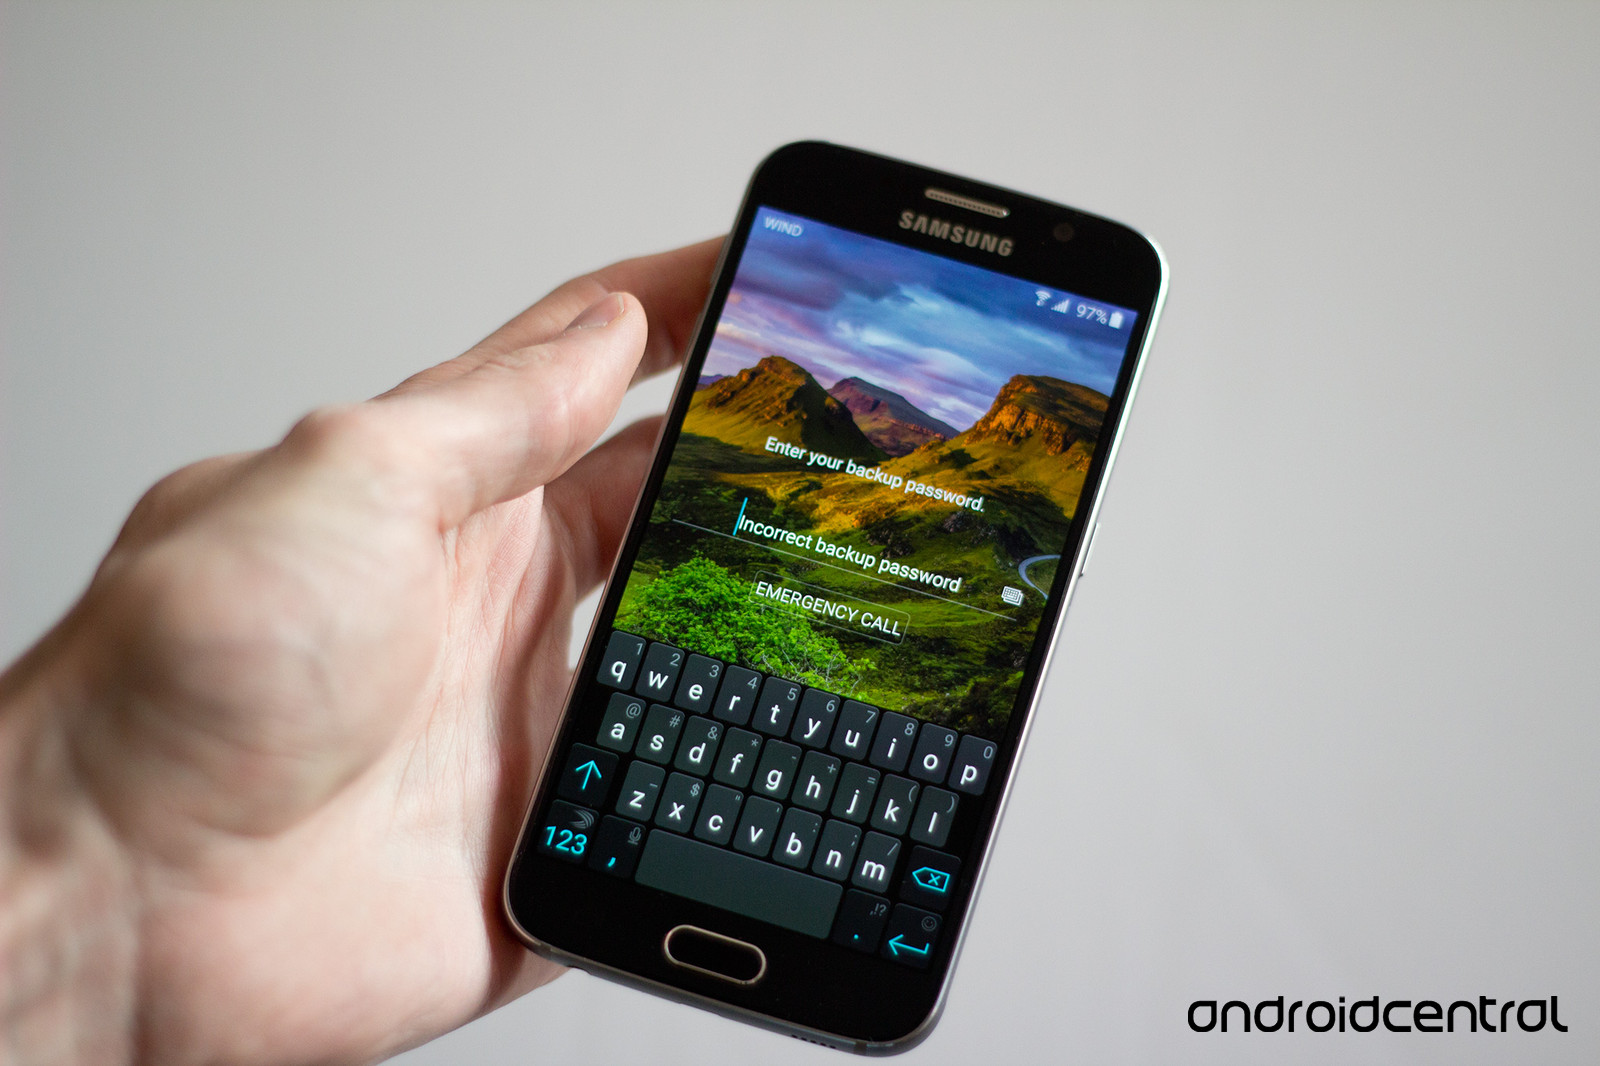 Samsung Galaxy Lock Screen Removal without losing data